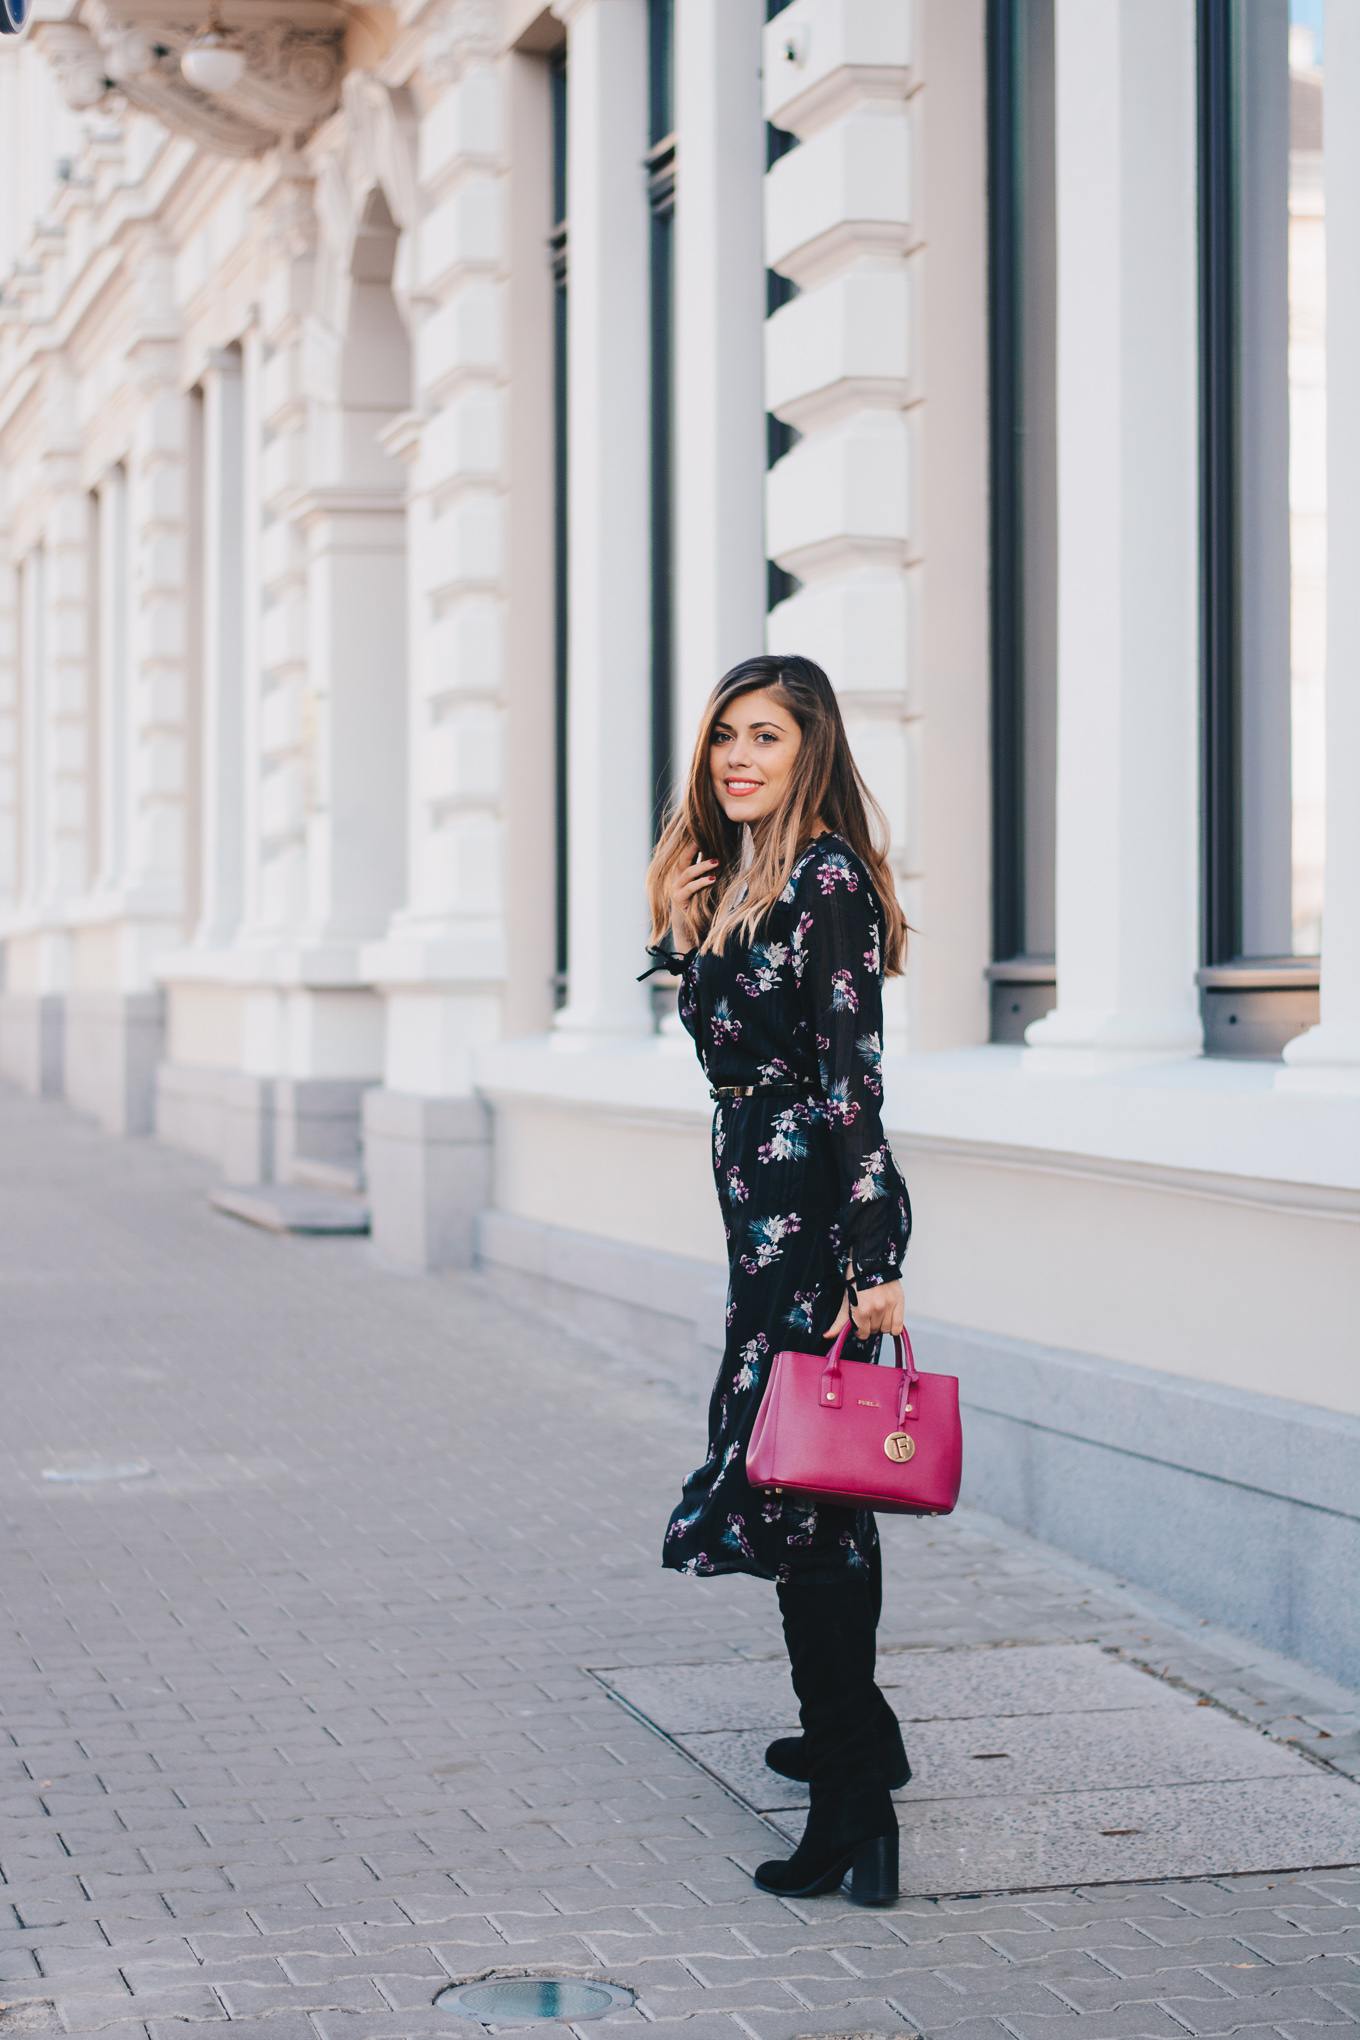 Tom Tailor blogger favorite dress